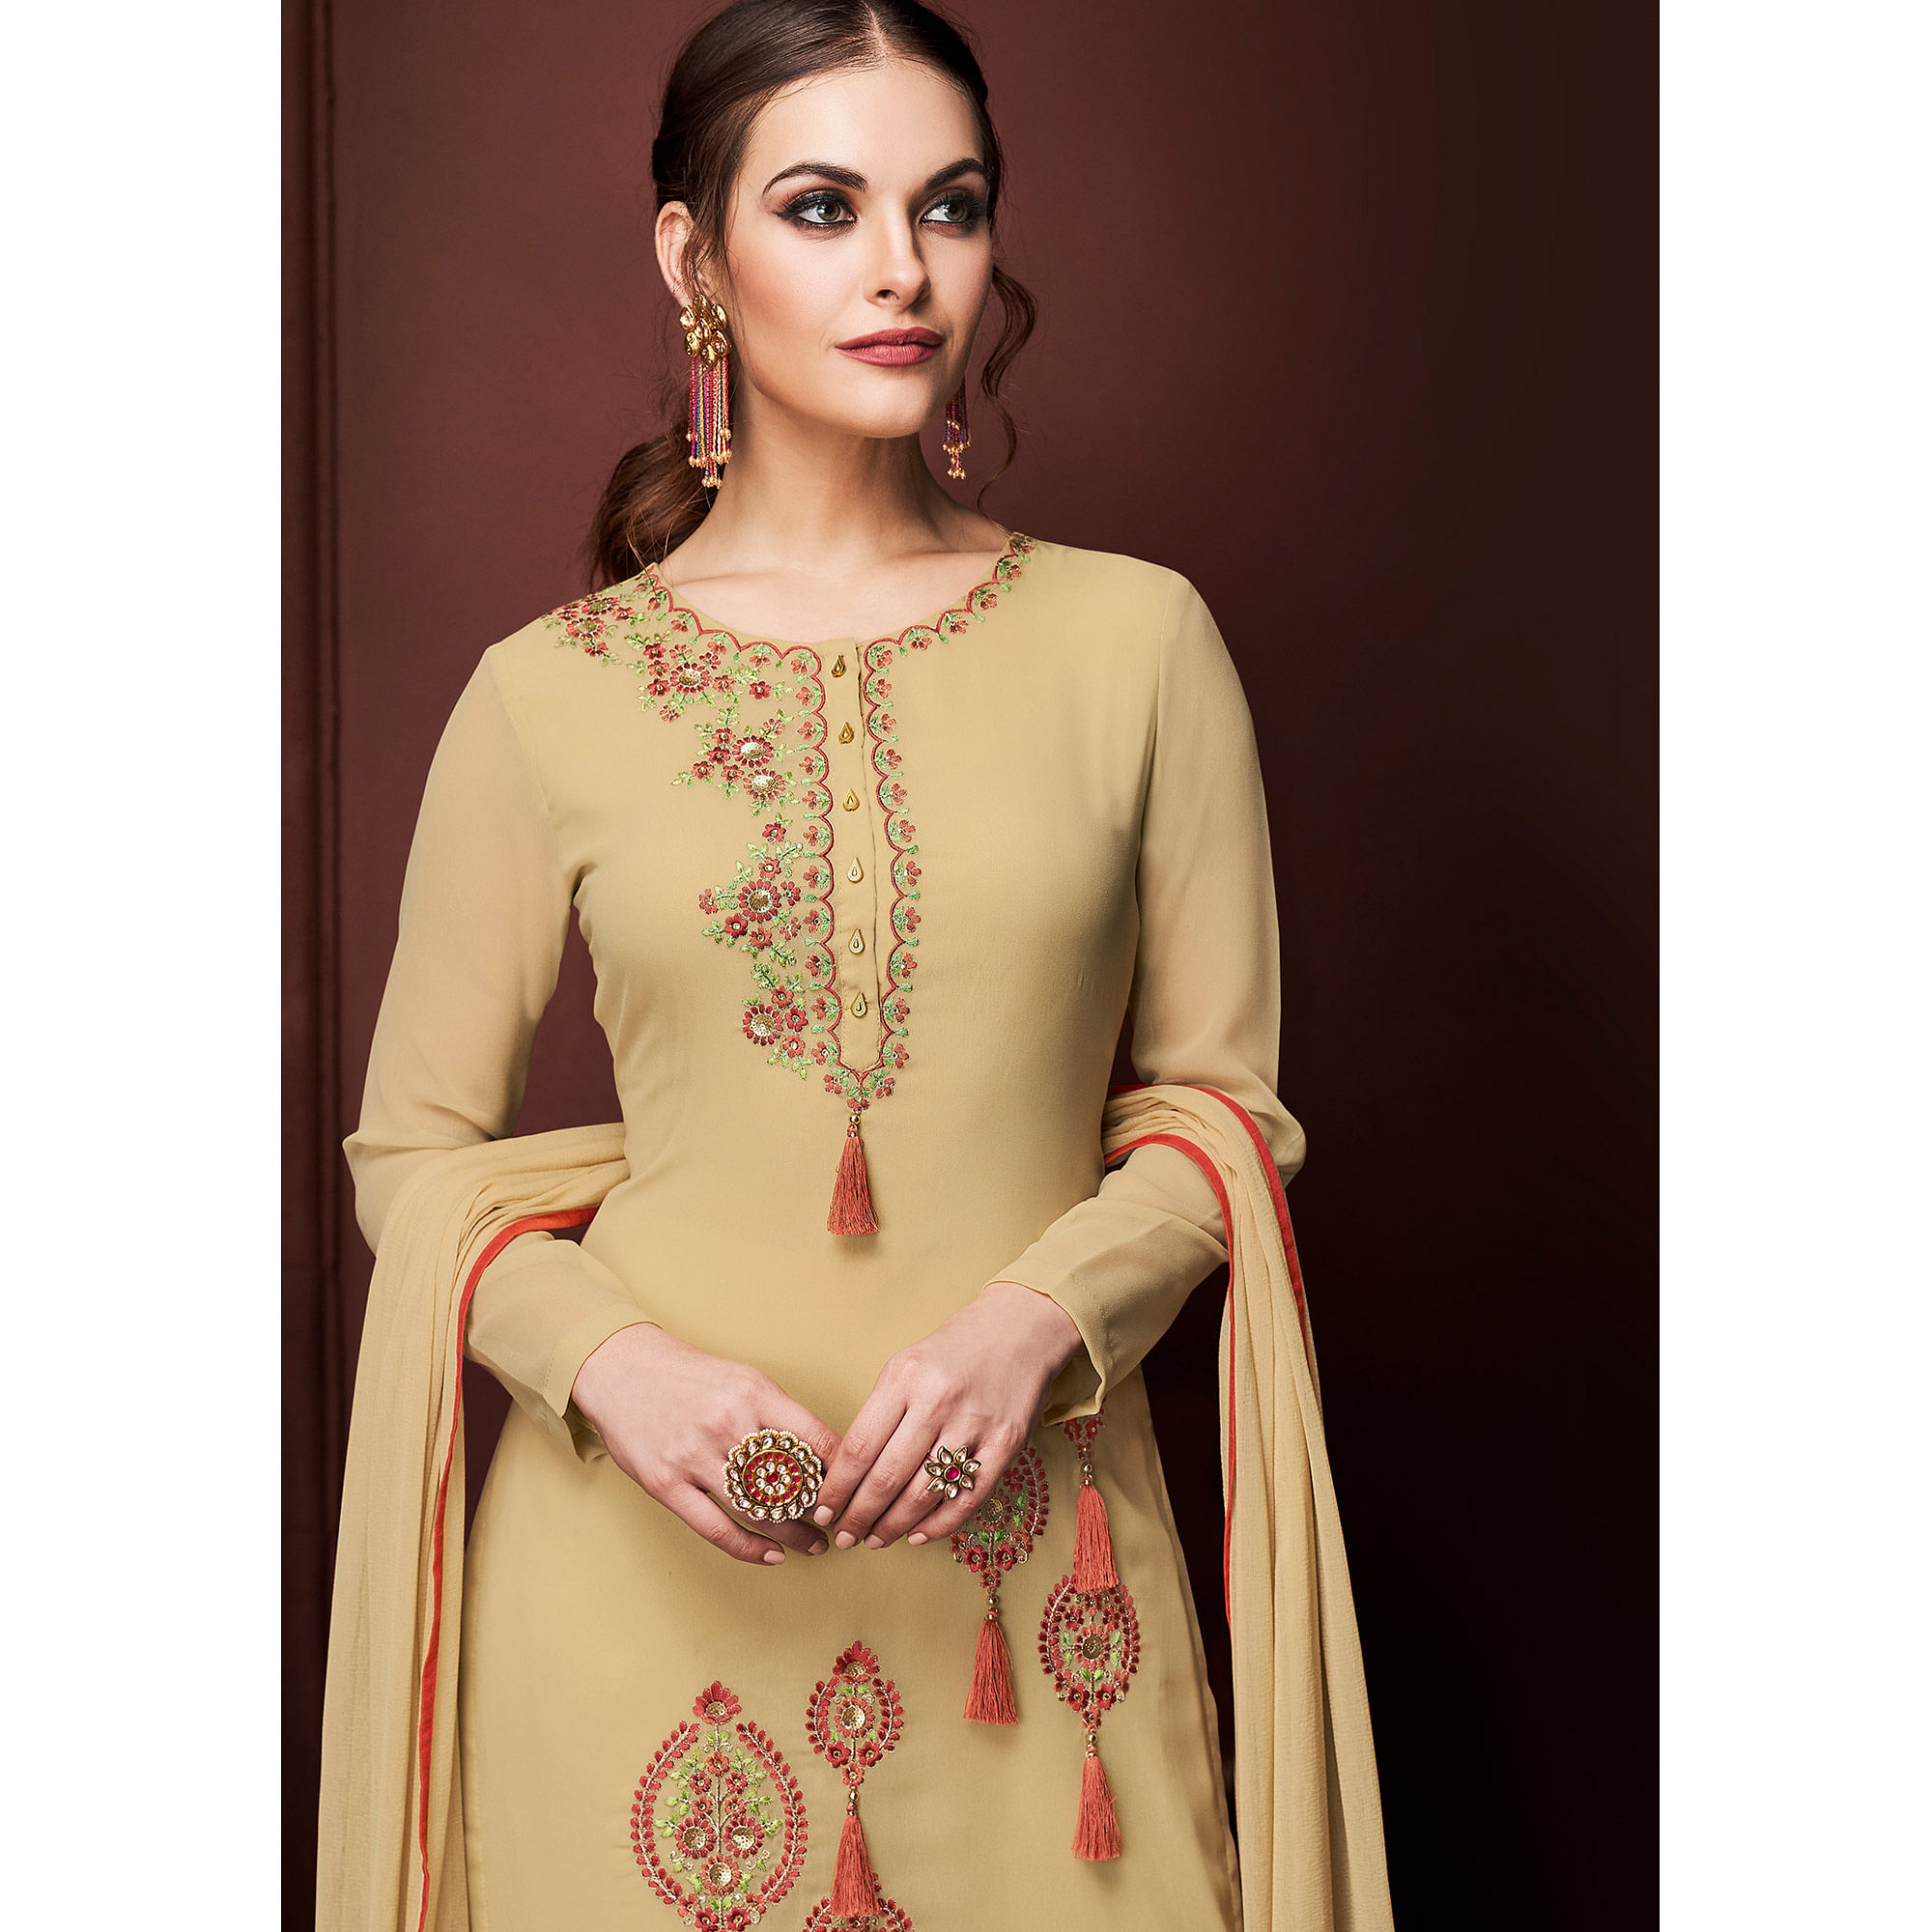 NAKKASHI - Blissful Beige Colored Party Wear Embroidered Faux Georgette Dress Material